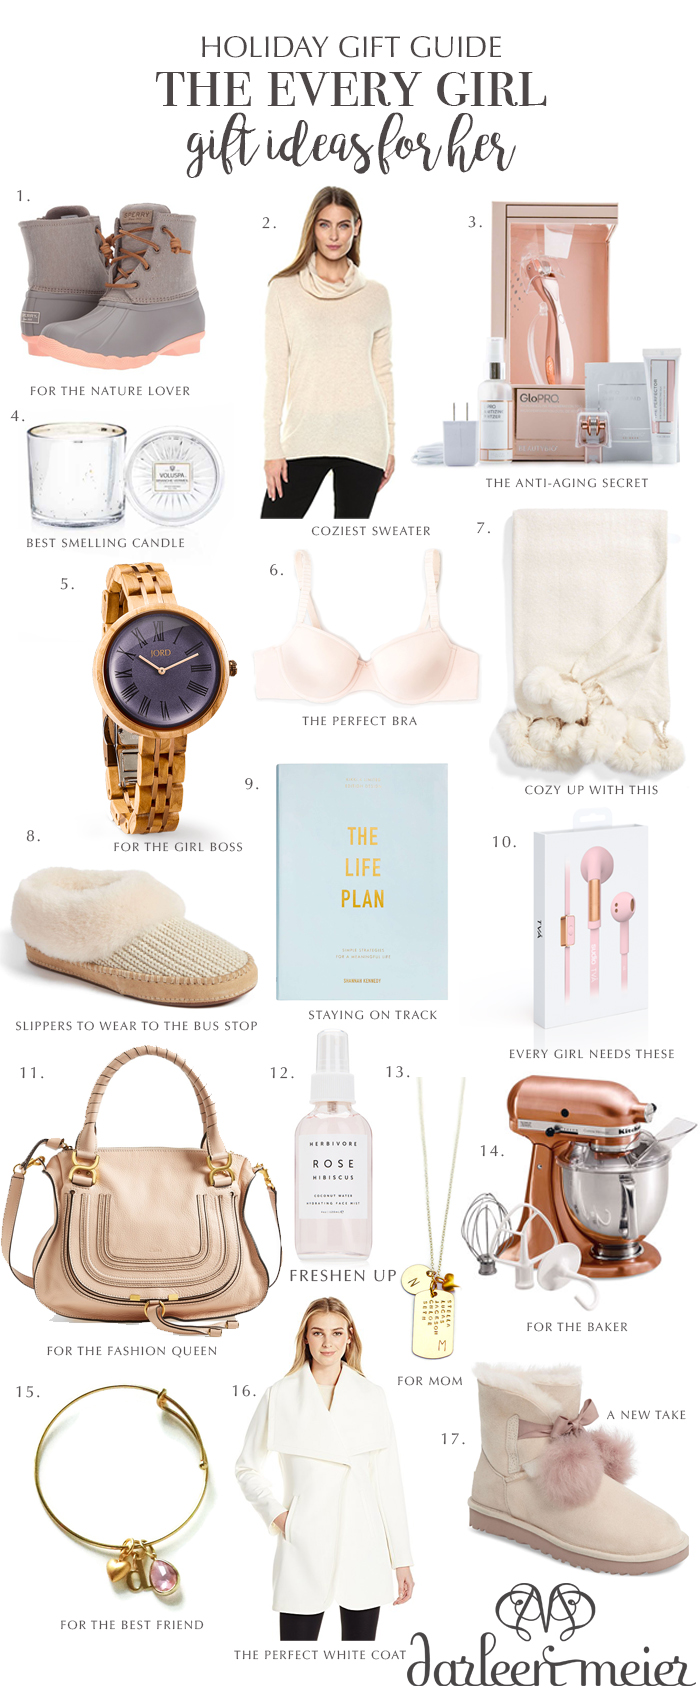 holiday gift guide 2017 for her, holiday gift ideas for the every girl, holiday for for nature lovers, for the bake, girl boss, fashion queen, fashion lover, holiday gift guide for mom, wire less headphones, sudio wireless, jord watches for women, girl gift guides, Christmas present ideas, glo pro anti aging